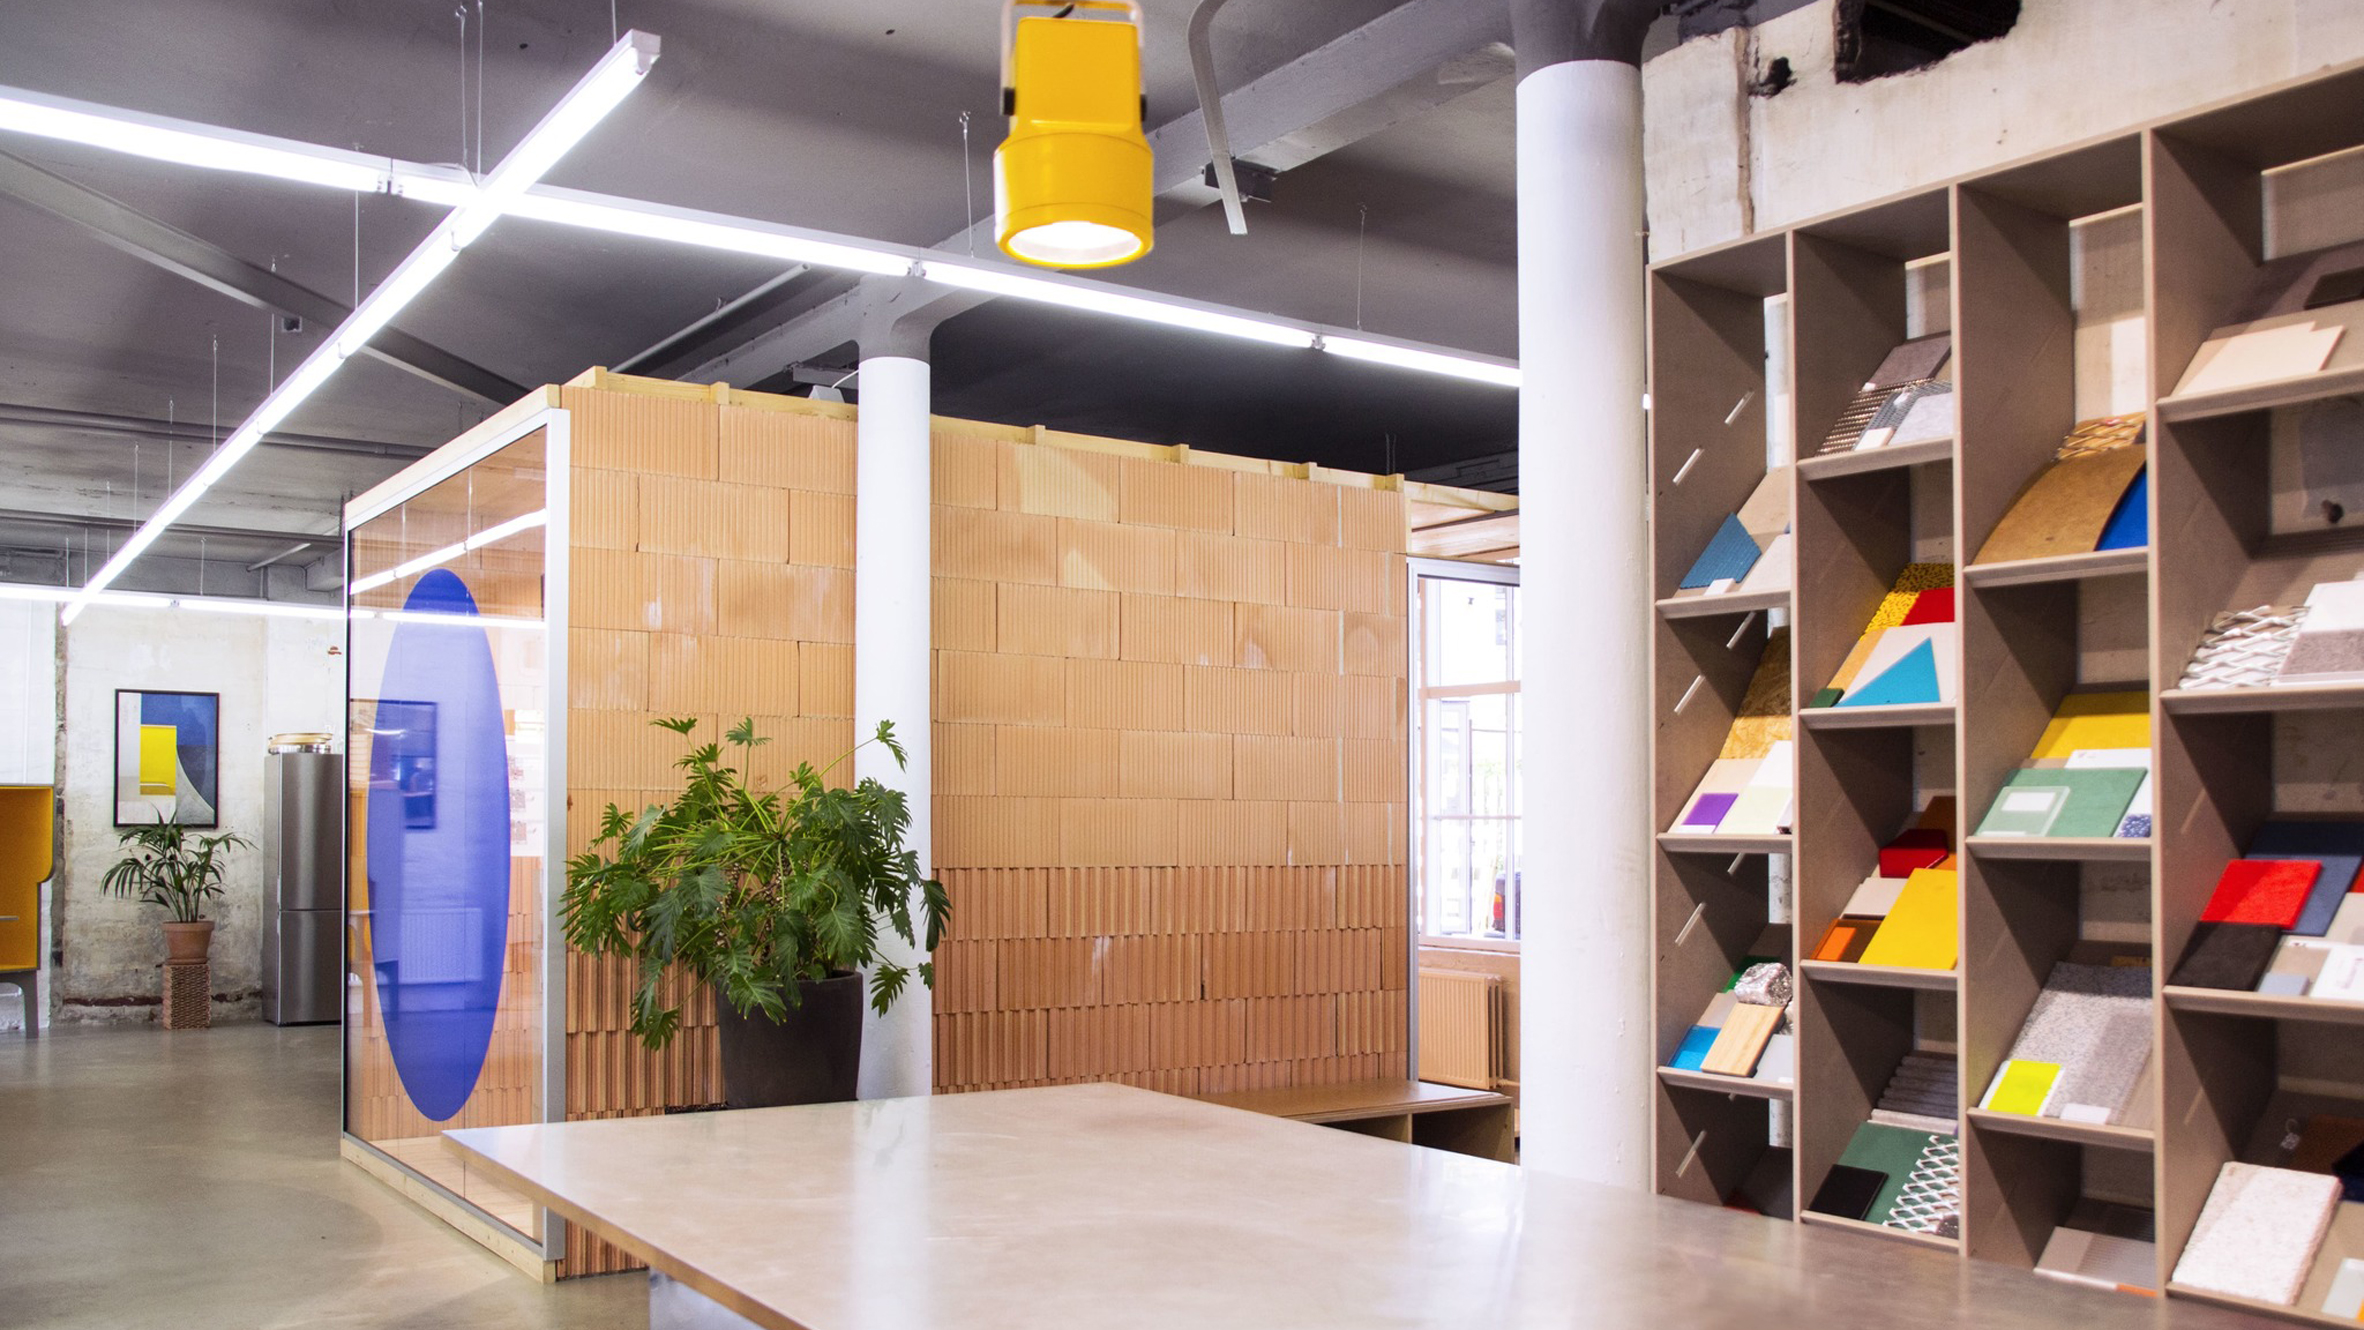 Spacon&X HQ office space by Spacon & X